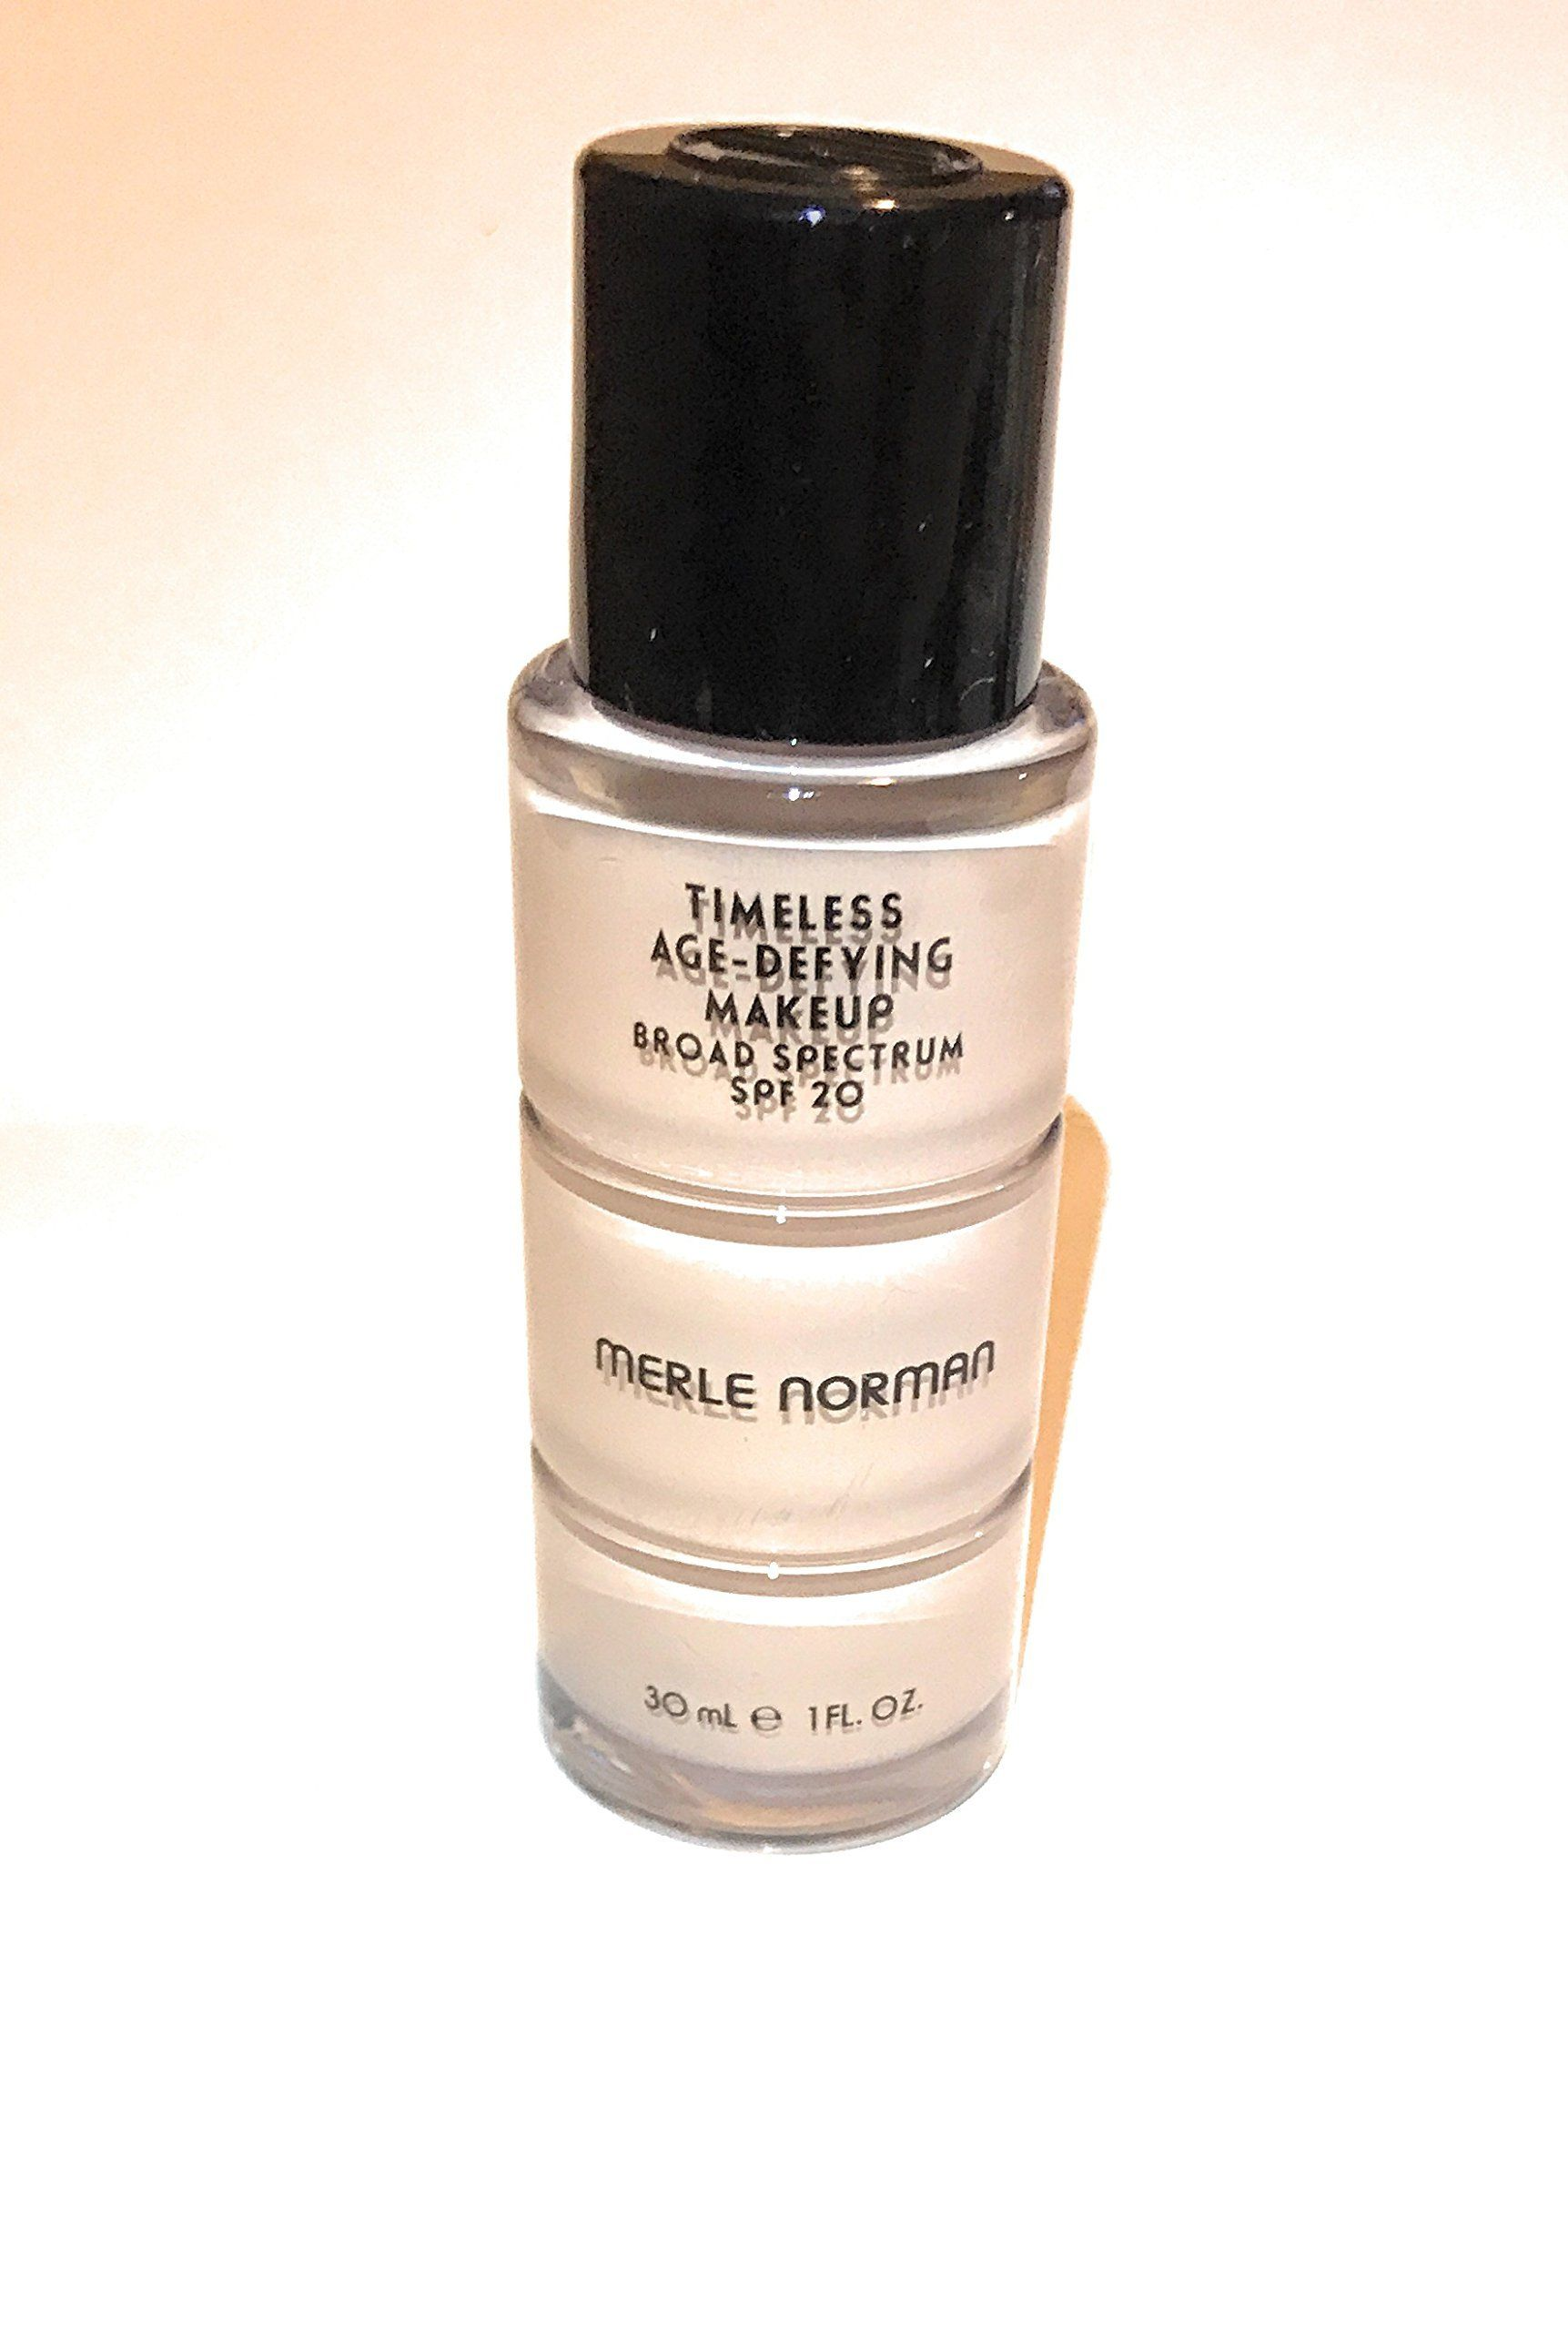 Merle Norman Timeless foundation. Coverage Medium to Full